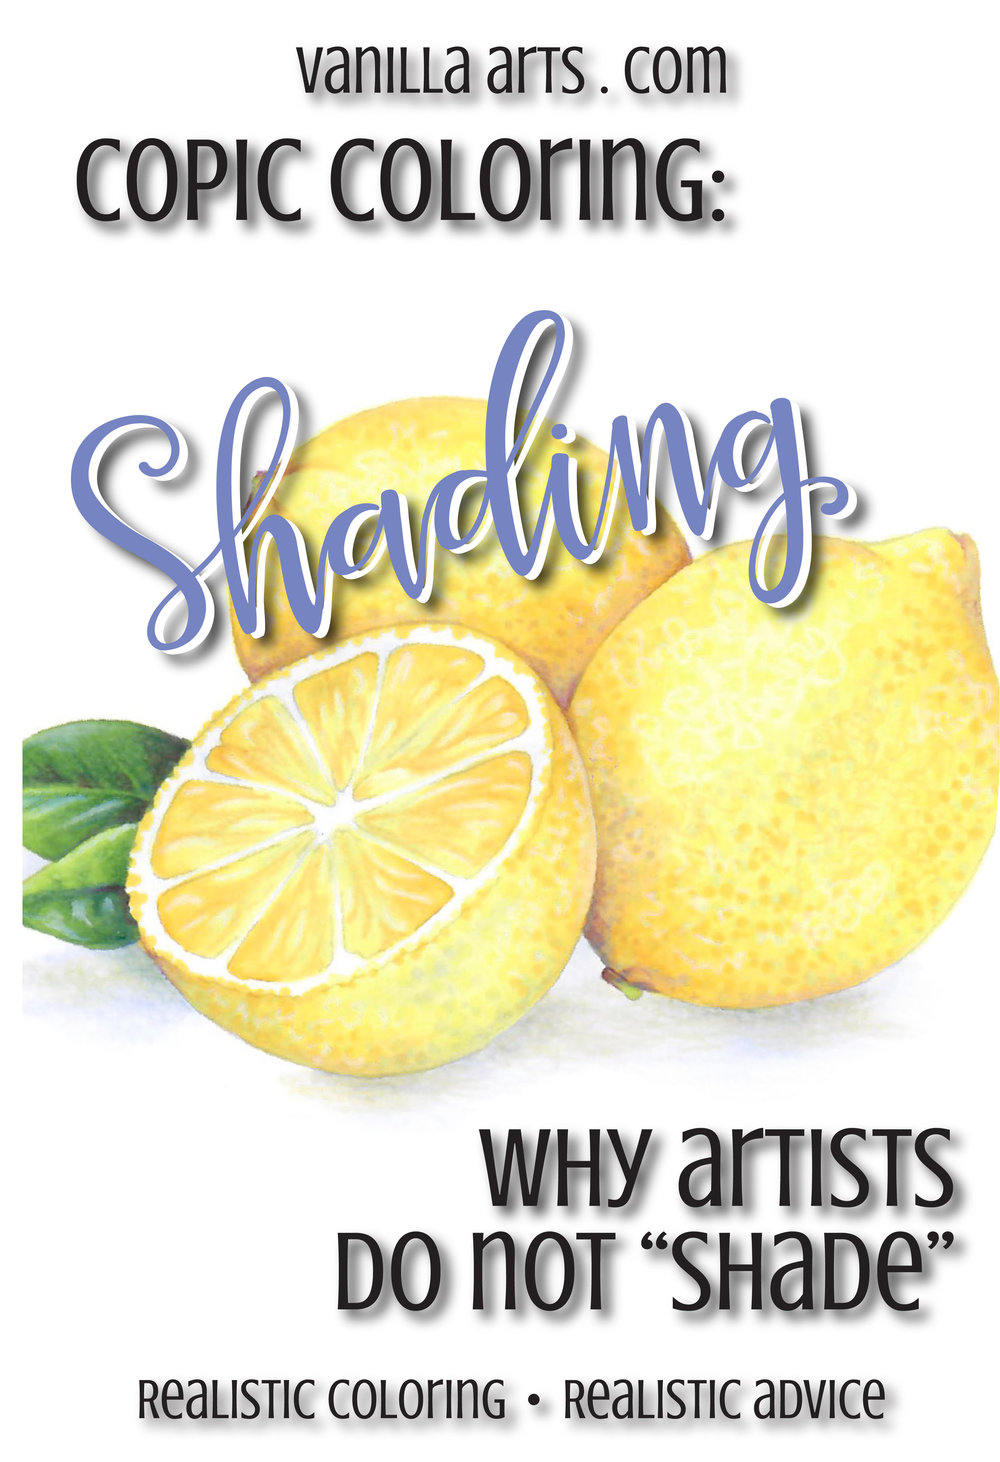 Copic Coloring: Why Artists Do Not Shade (Part 1)